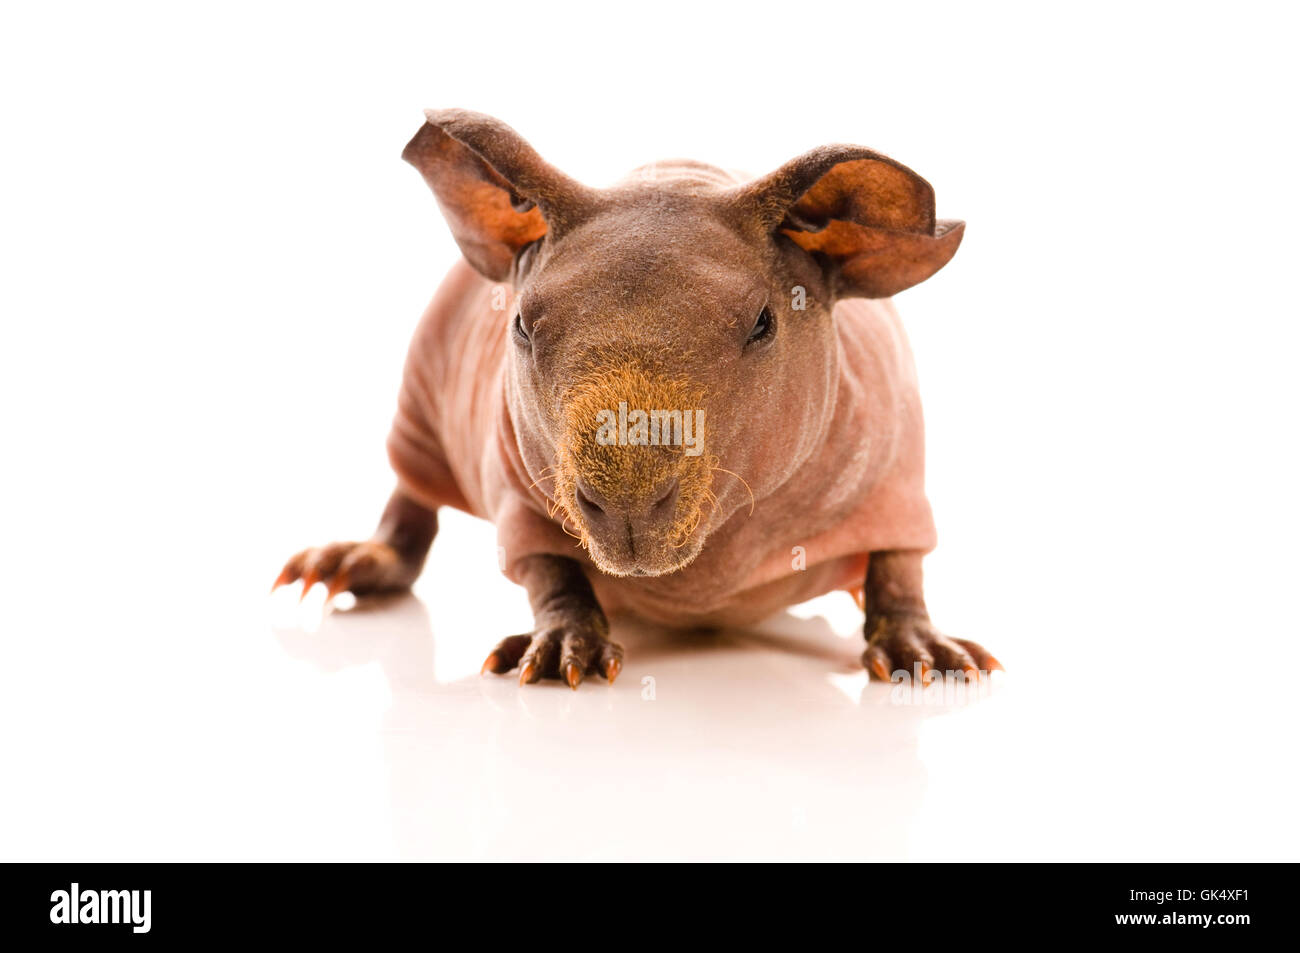 animal pet hairless - Stock Image